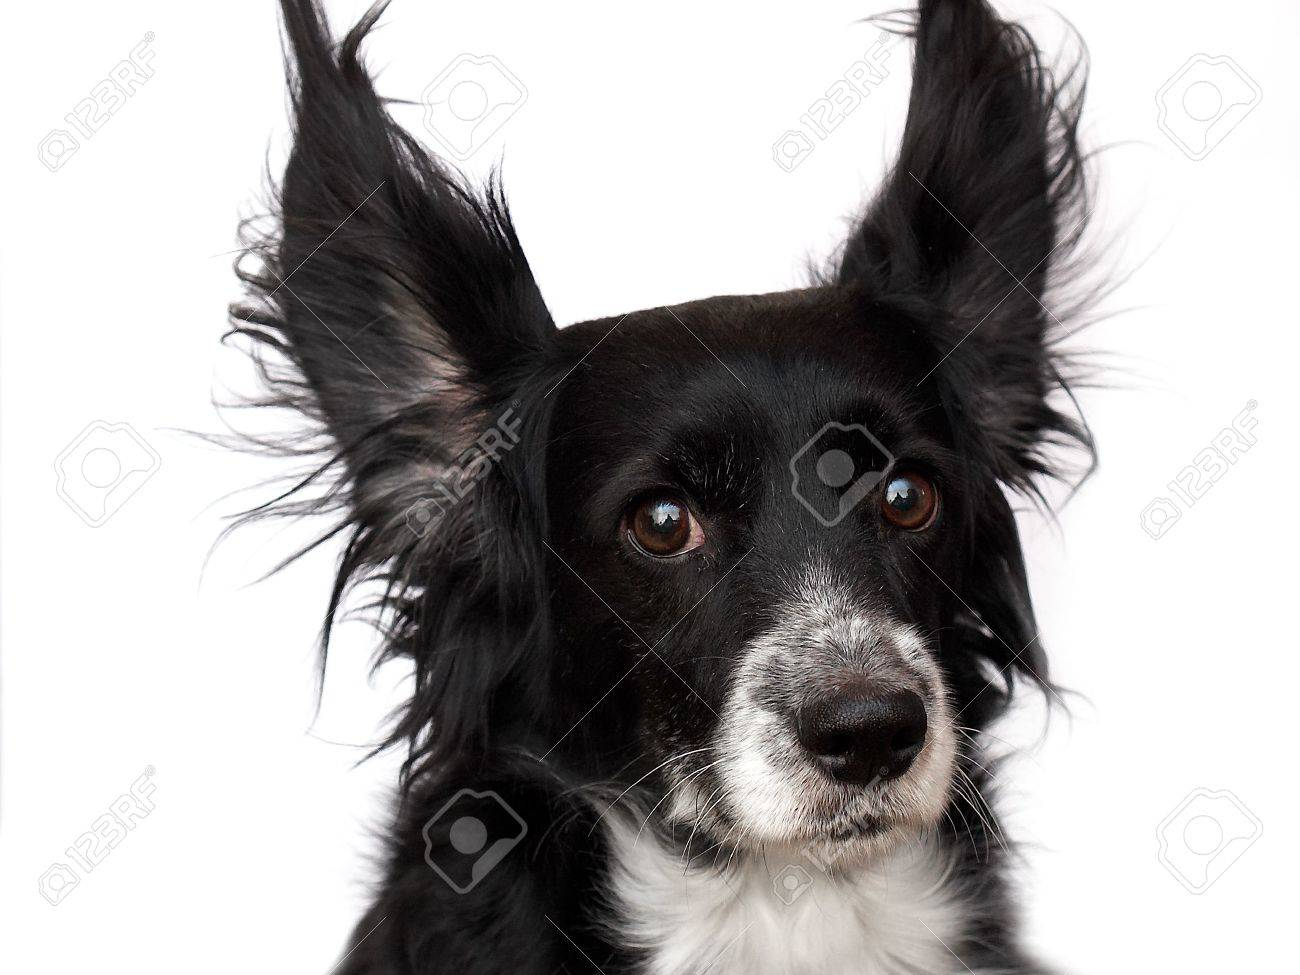 this is a black dog on a white background Stock Photo - 563107